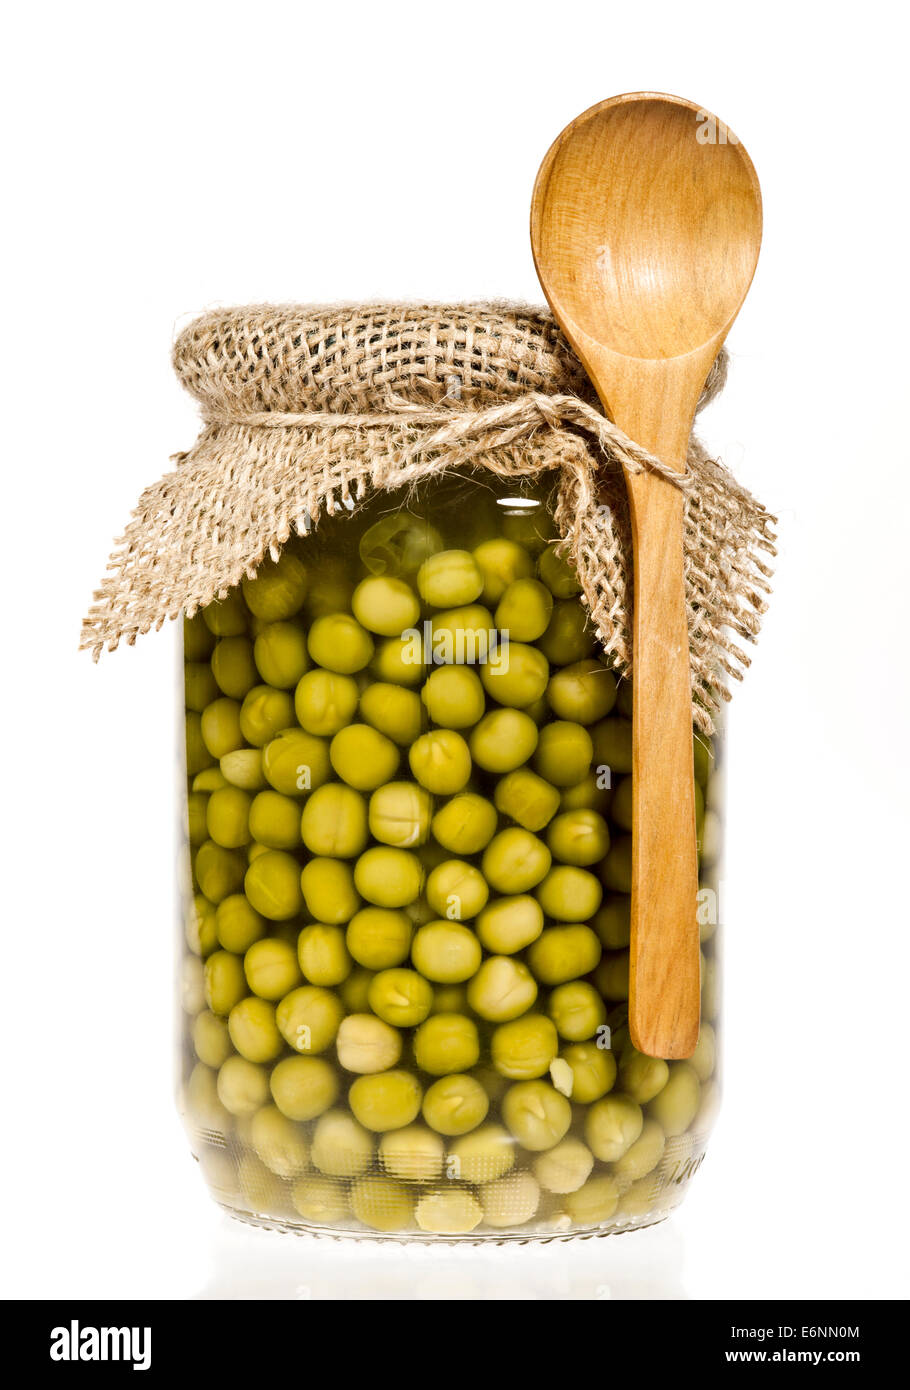 Glass jar of preserved peas on a white background. Stock Photo